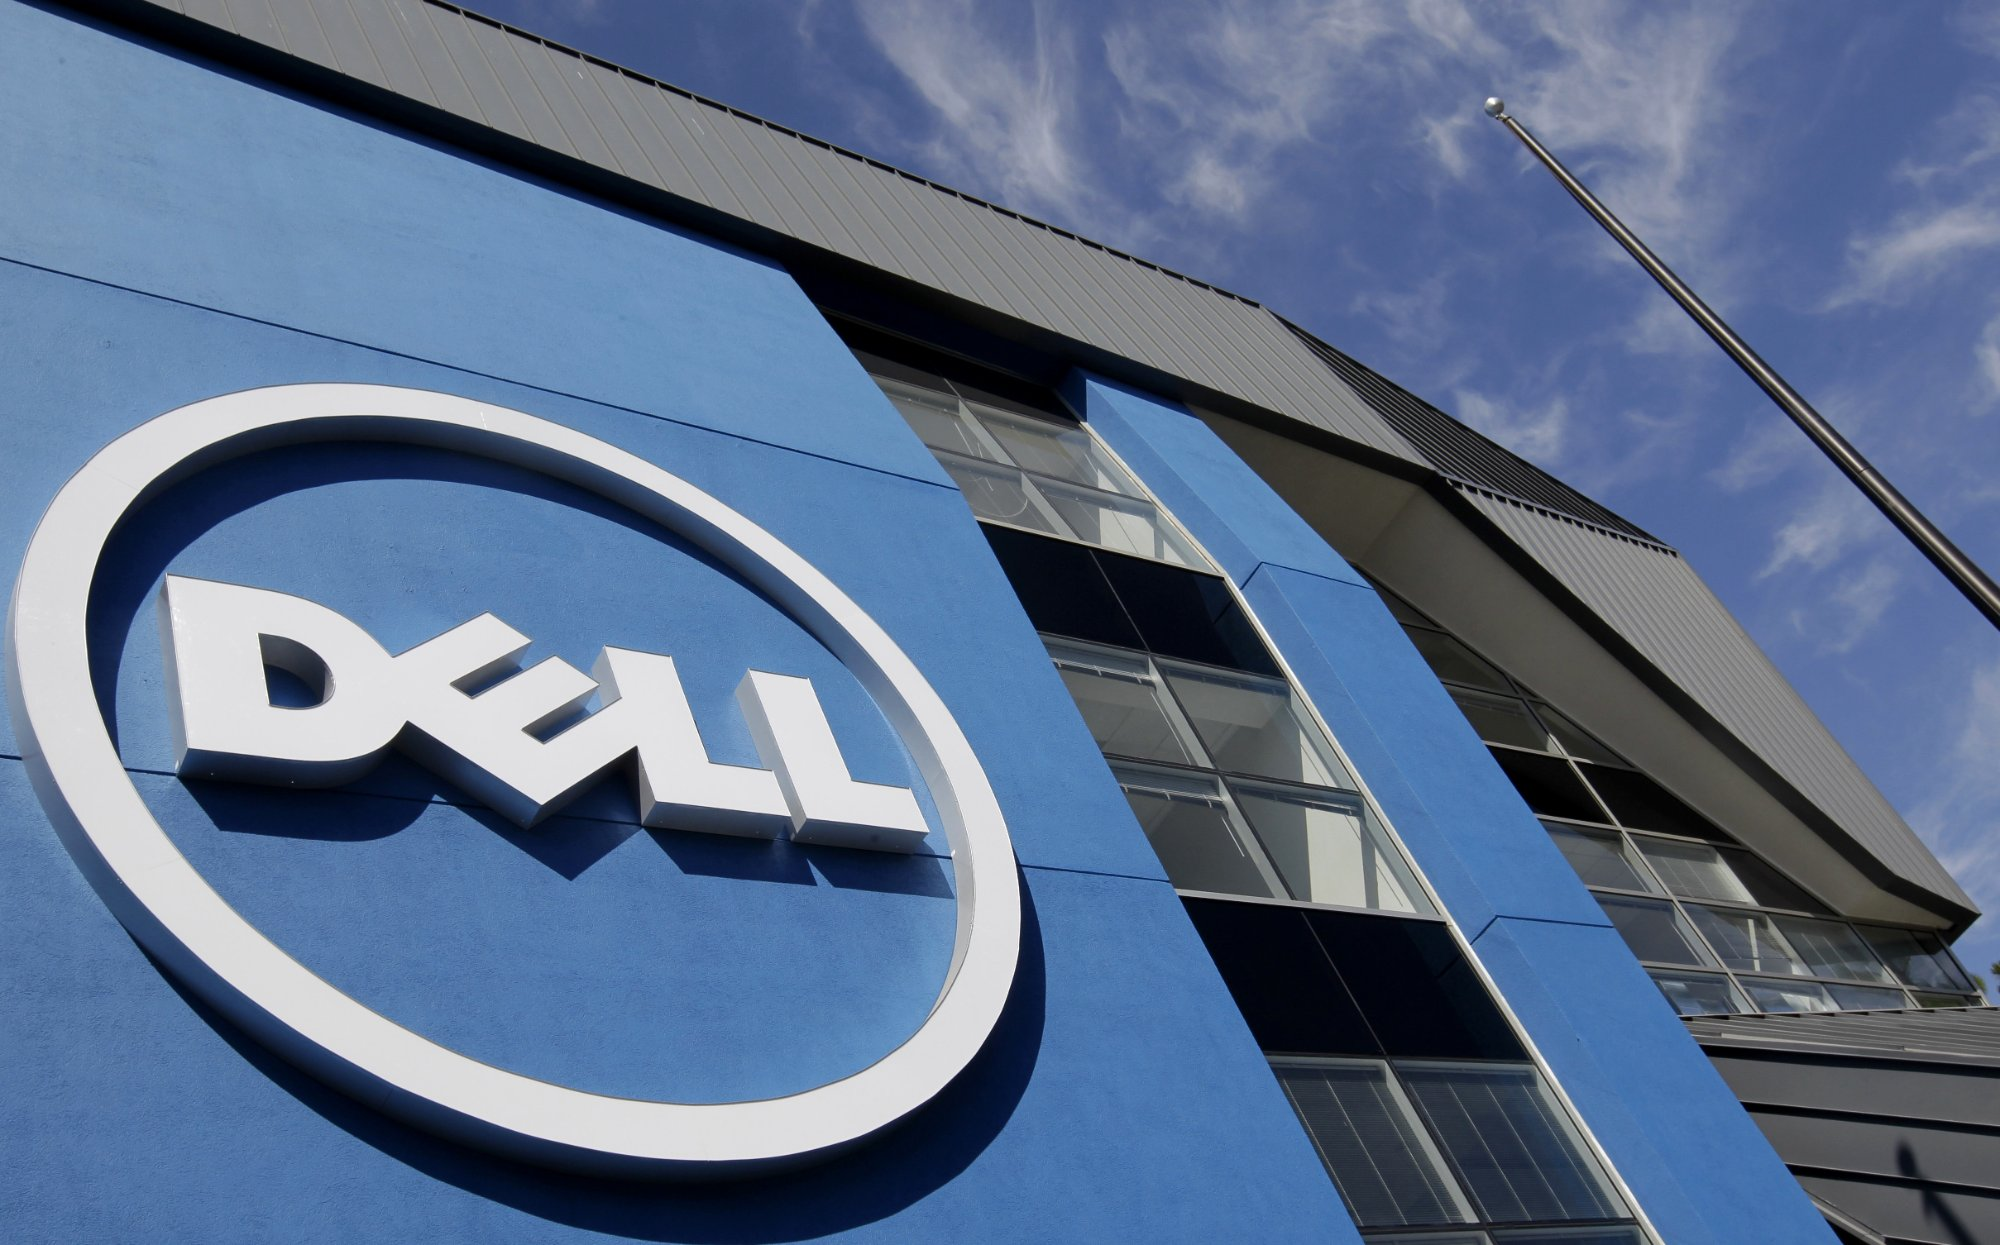 Dell reports solid growth despite continuing storage struggles